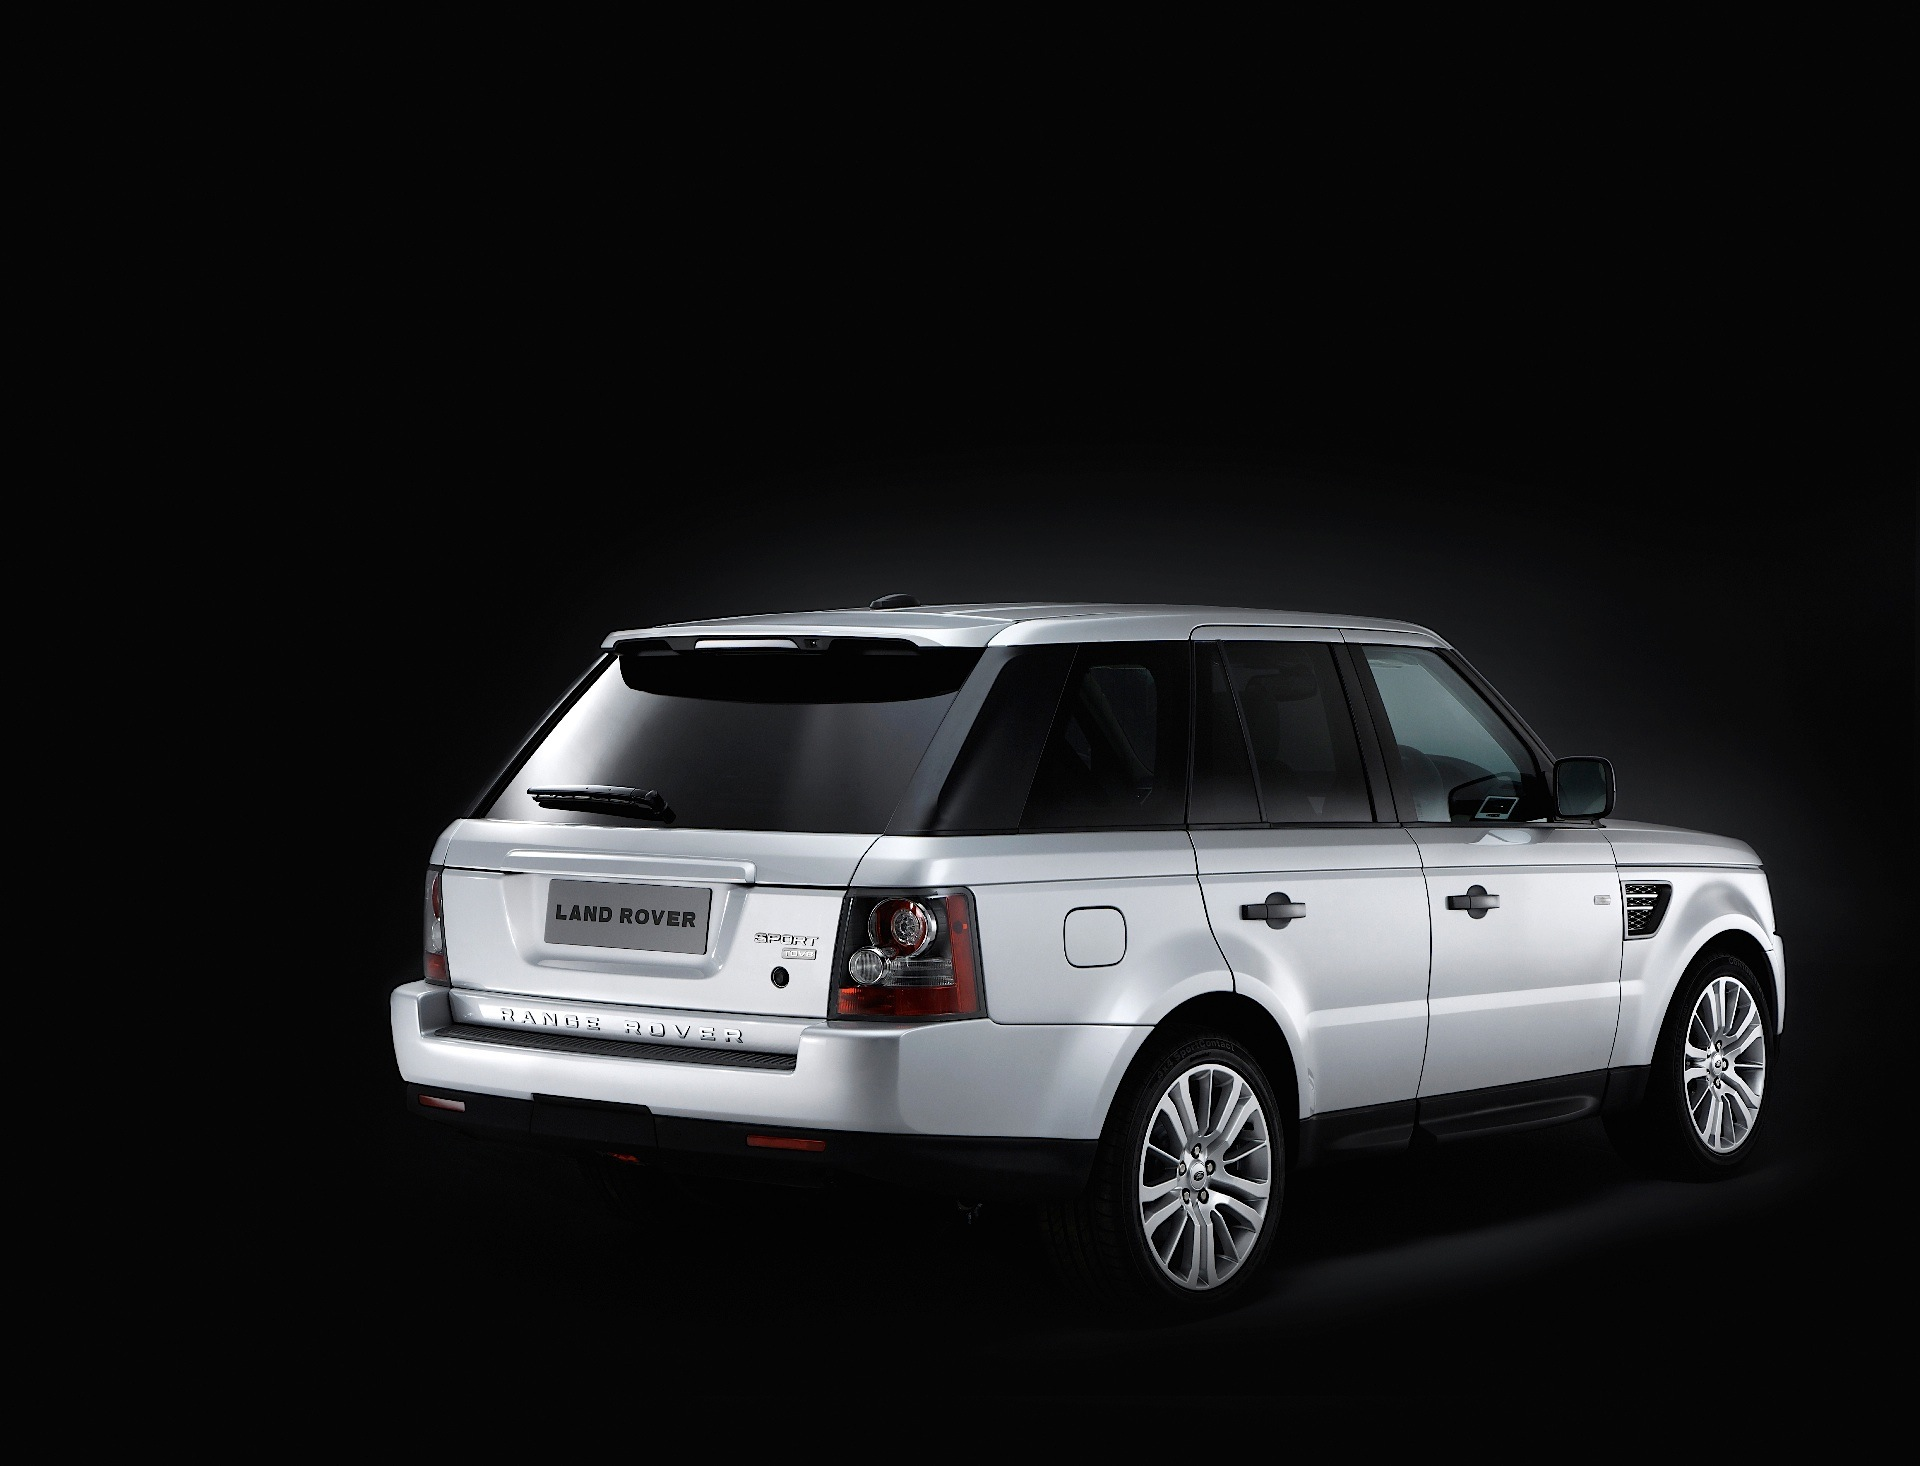 land rover range rover sport specs photos 2009 2010 2011 2012 2013 autoevolution. Black Bedroom Furniture Sets. Home Design Ideas